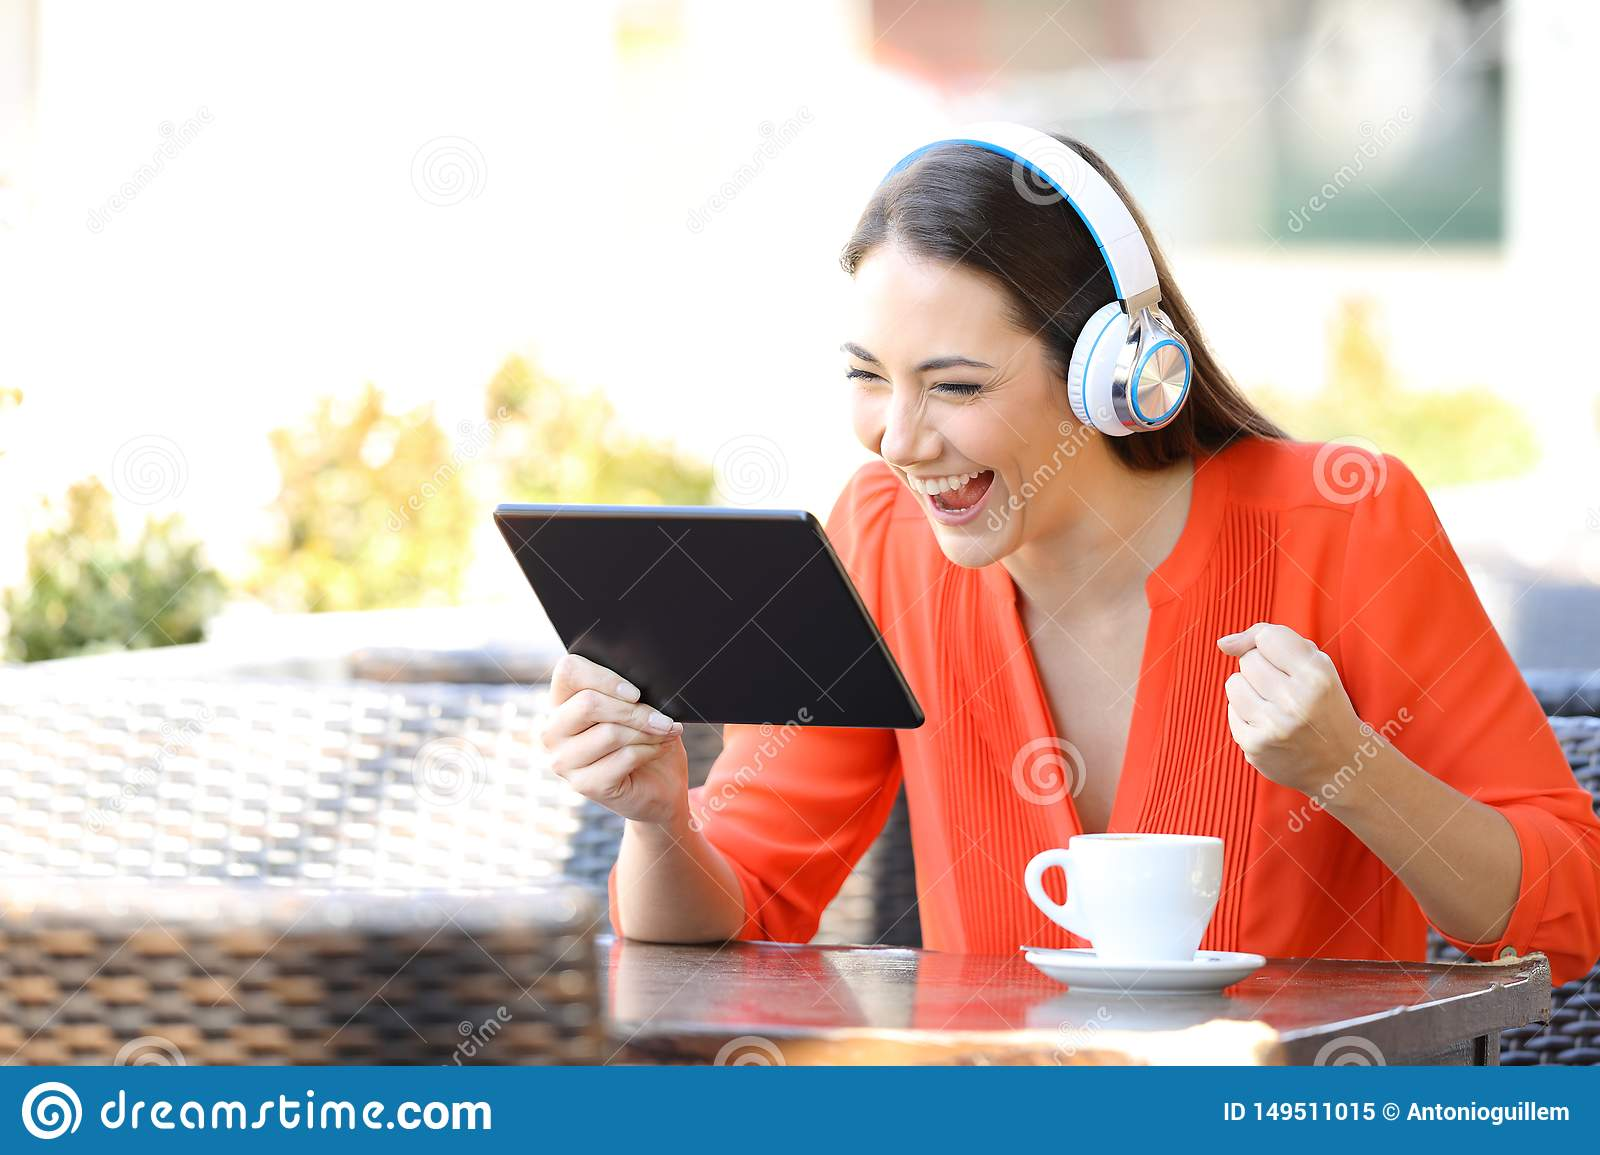 Excited woman watching and listening media on tablet